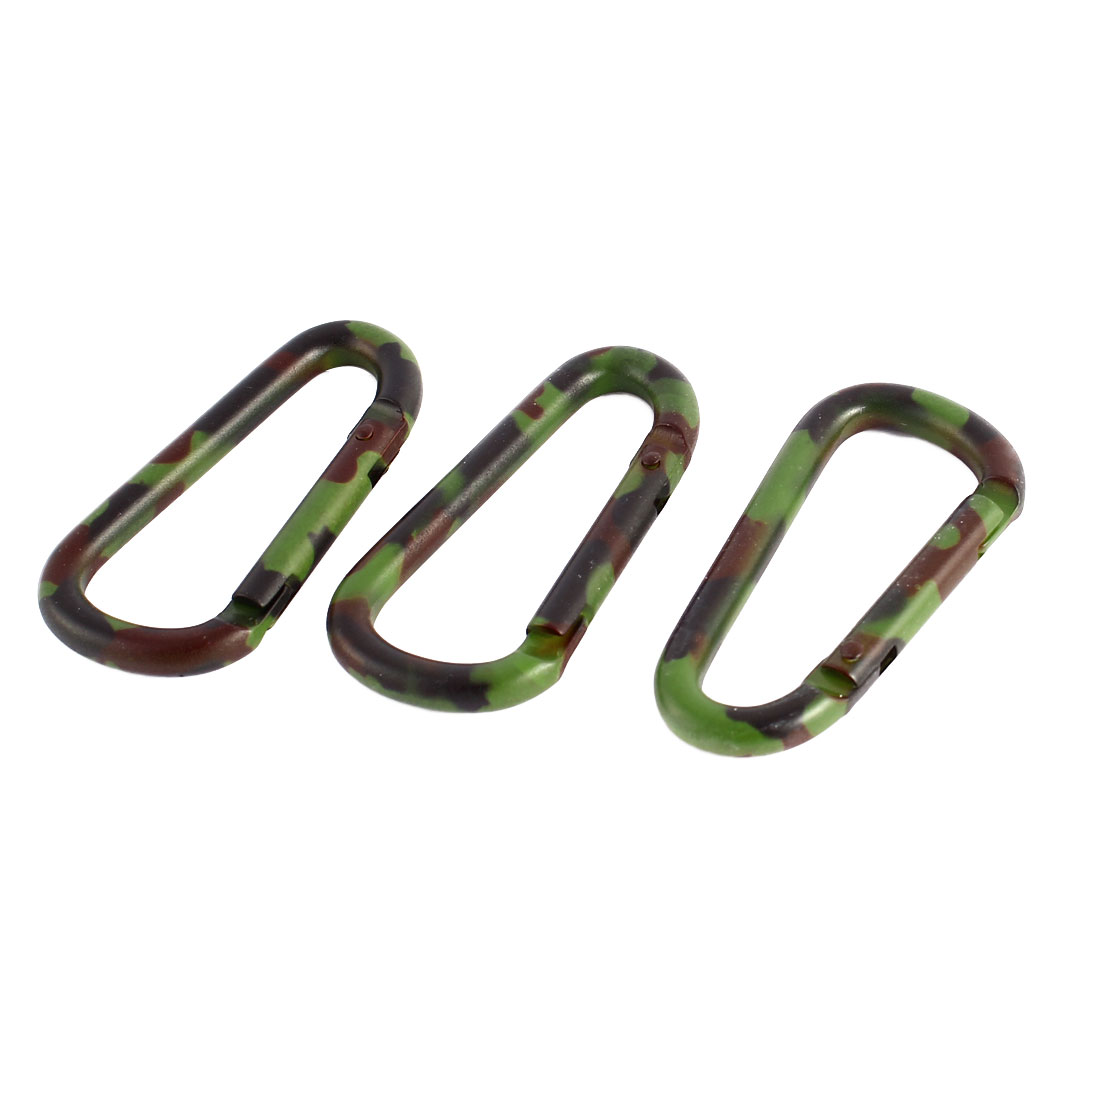 3Pcs Outdoor Camouflage Color Aluminum Alloy Spring Loaded Gate Carabiner Hook